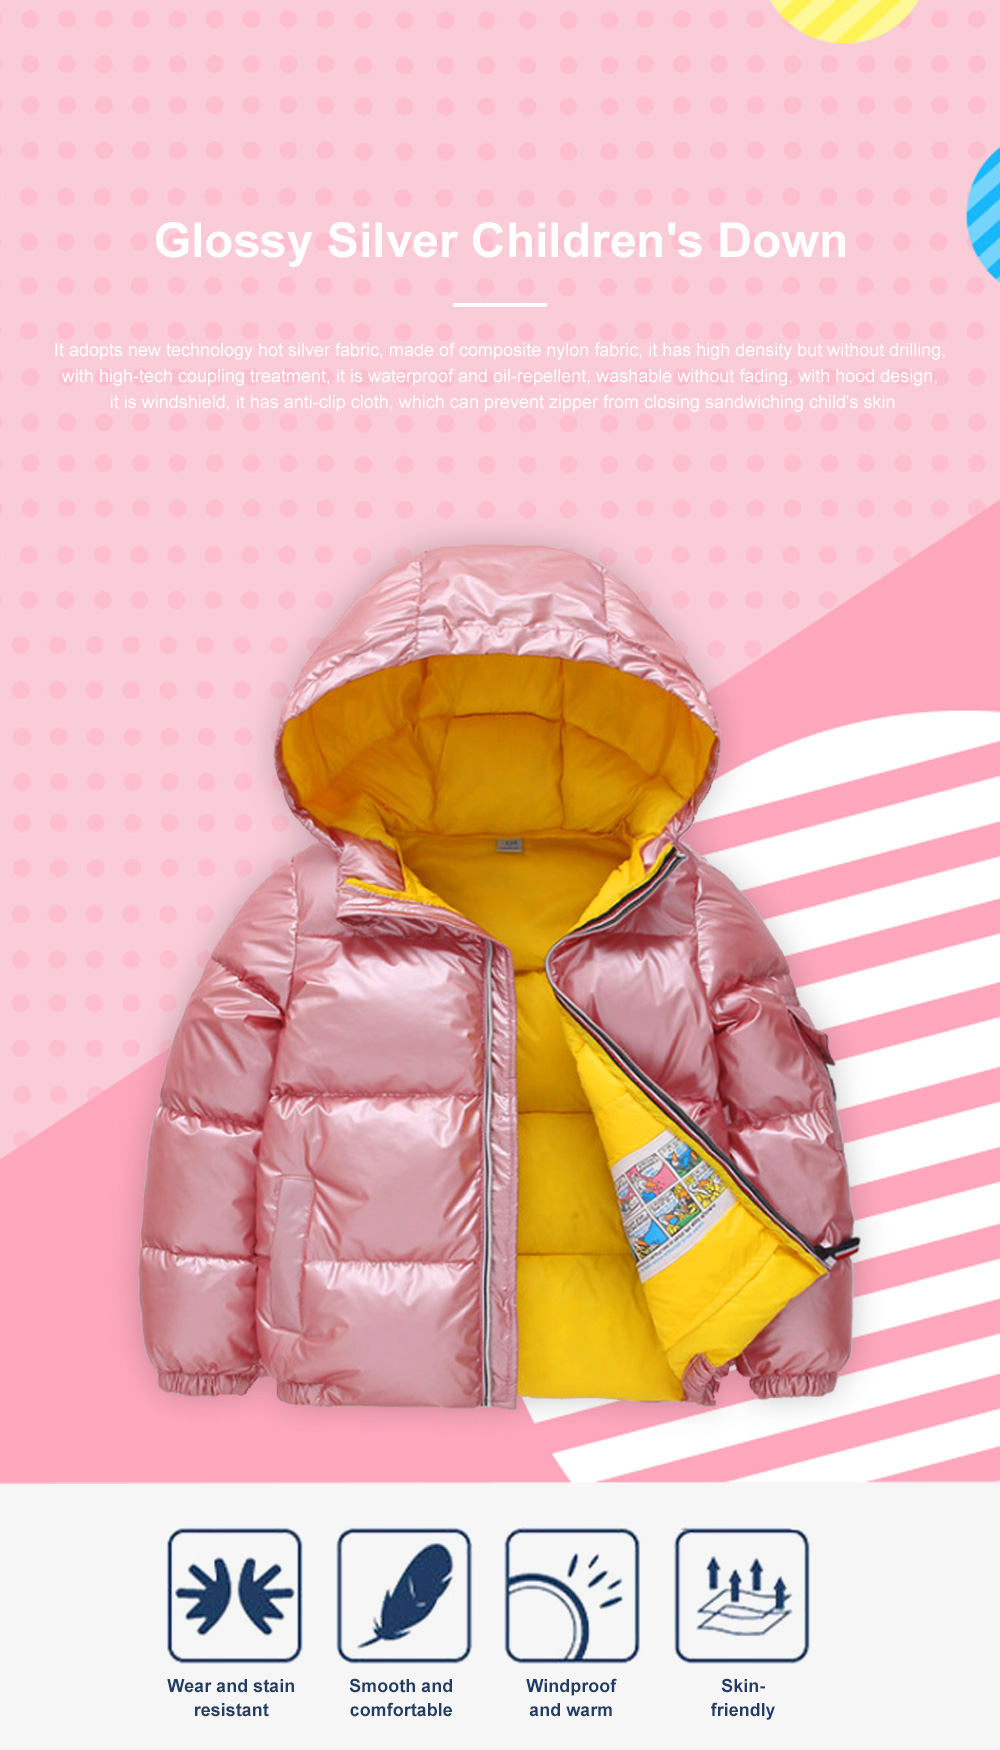 Glossy Silver Children's Down Coat Thickened Cotton Men & Women Children's Clothing Baby Down Cotton Space Bread Clothing 2019 0